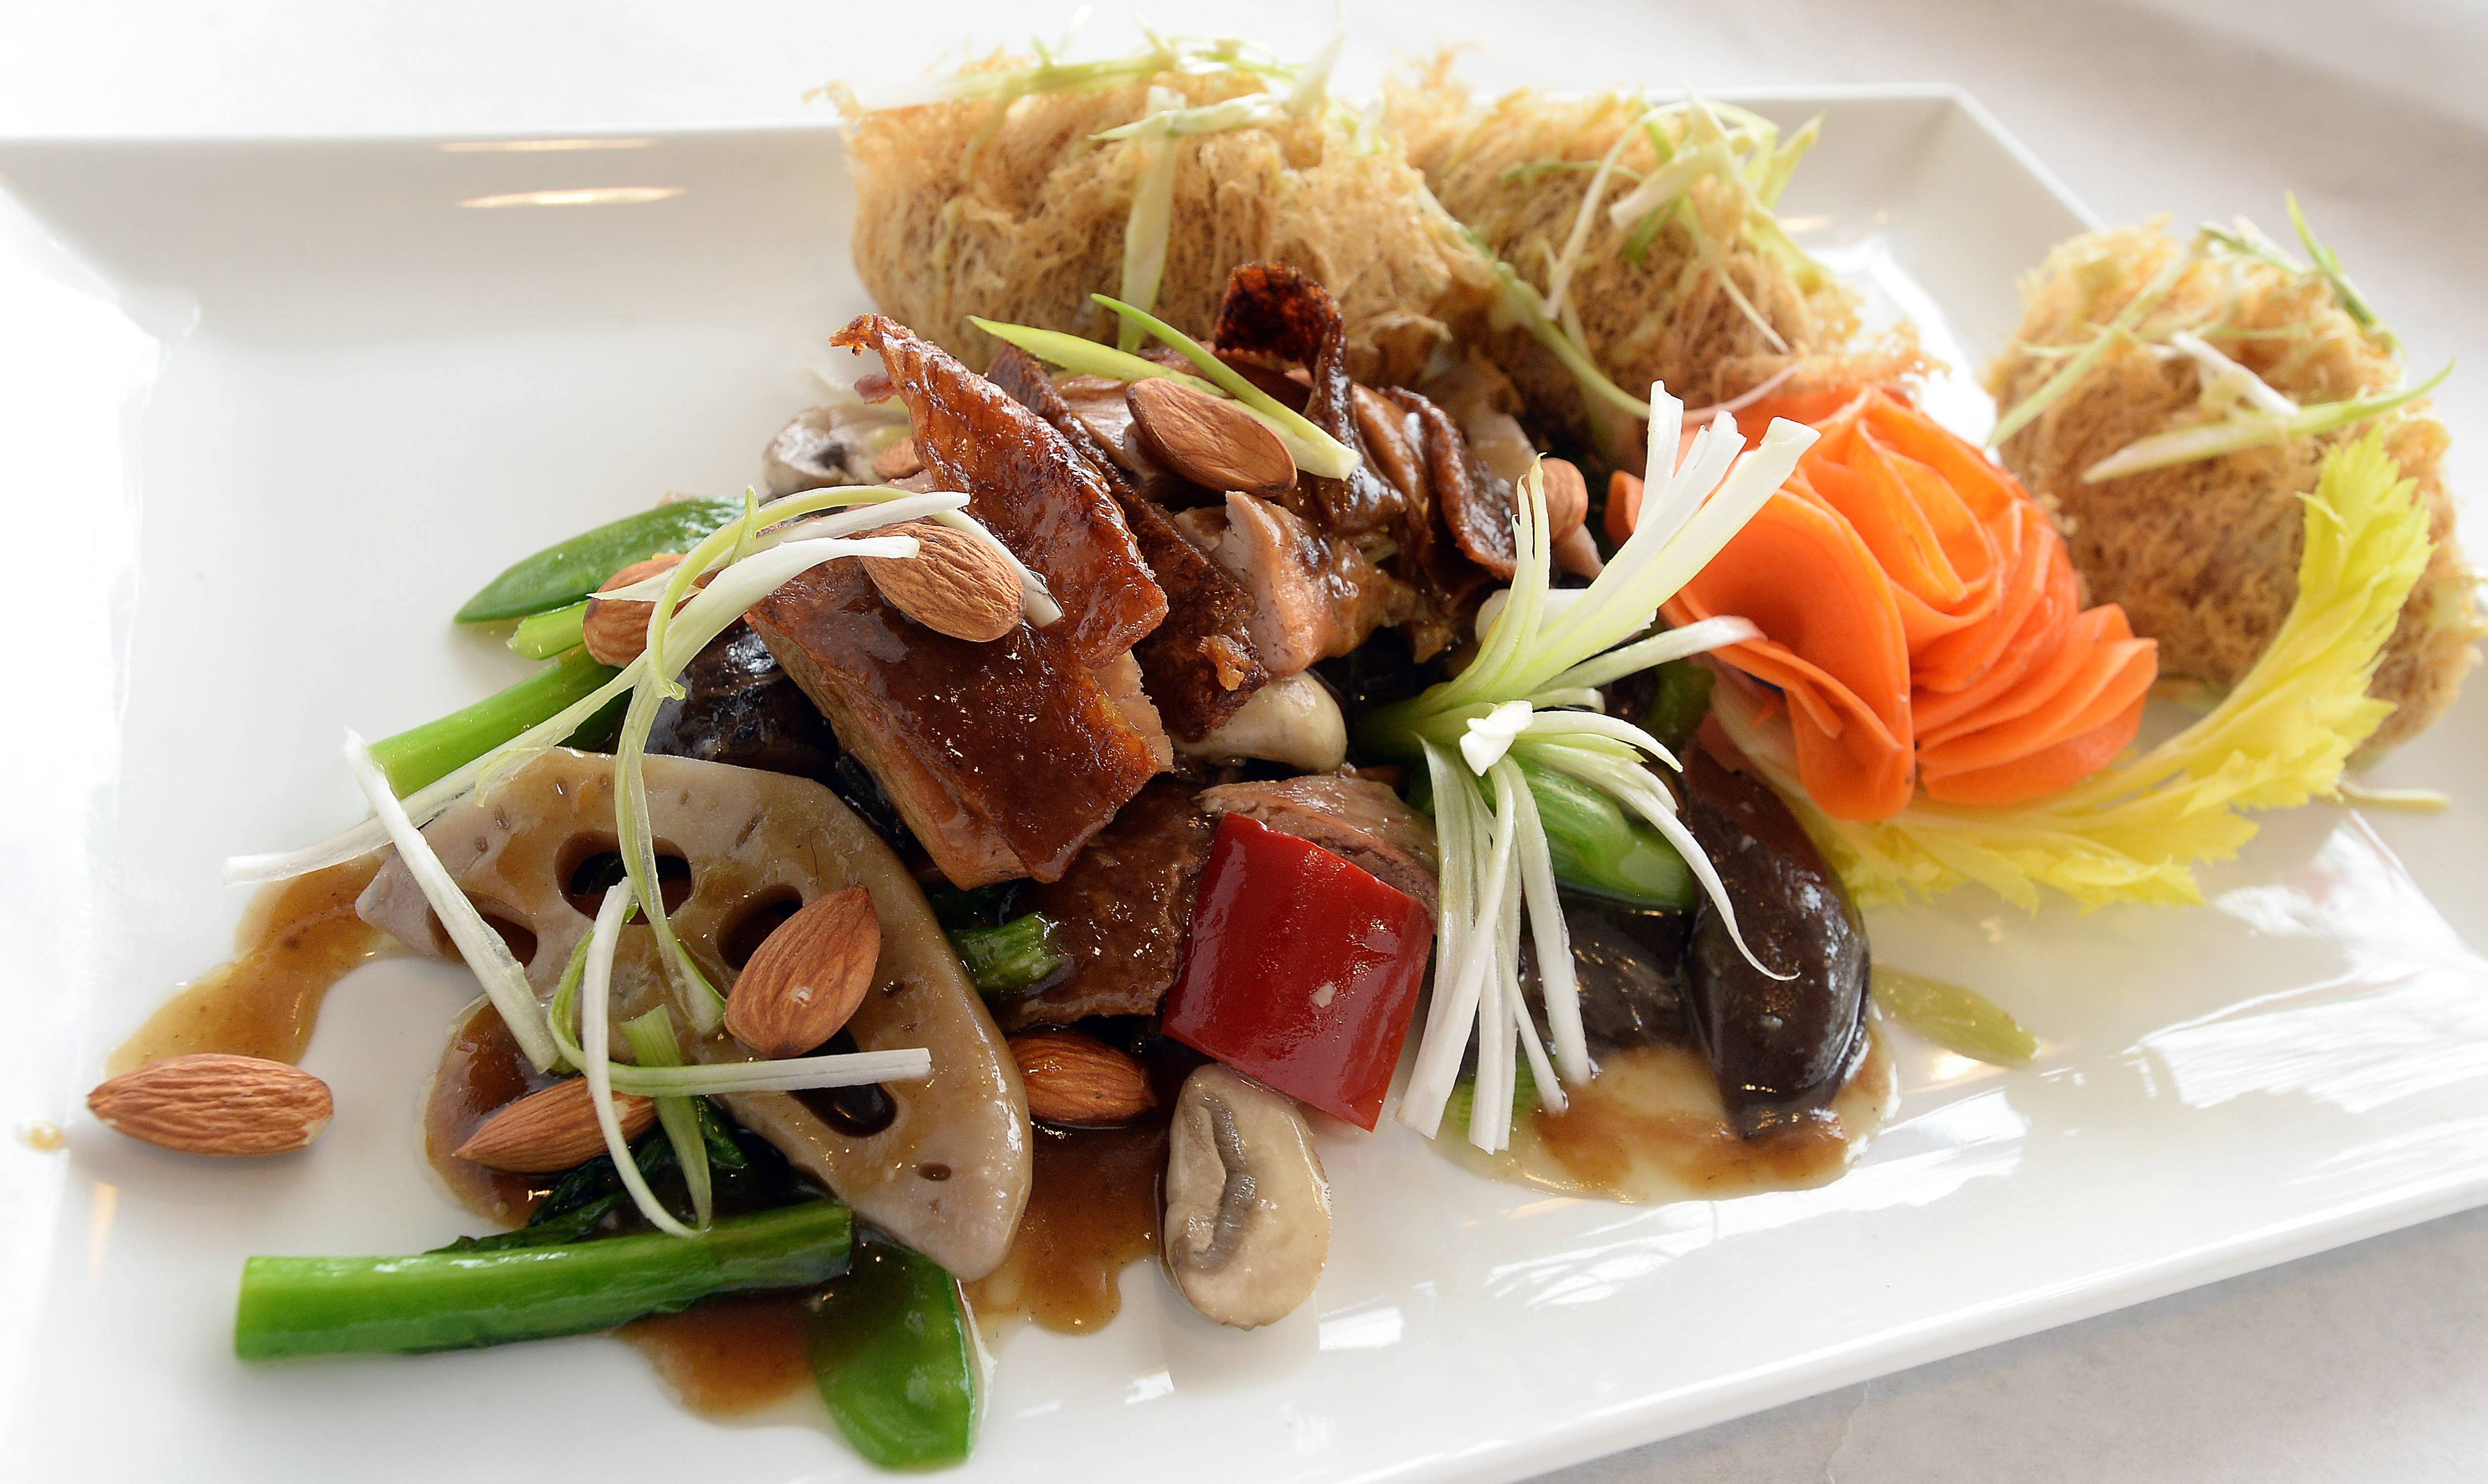 Bistro Chen's almond duck offers a nod to past long-time occupant Chin's.